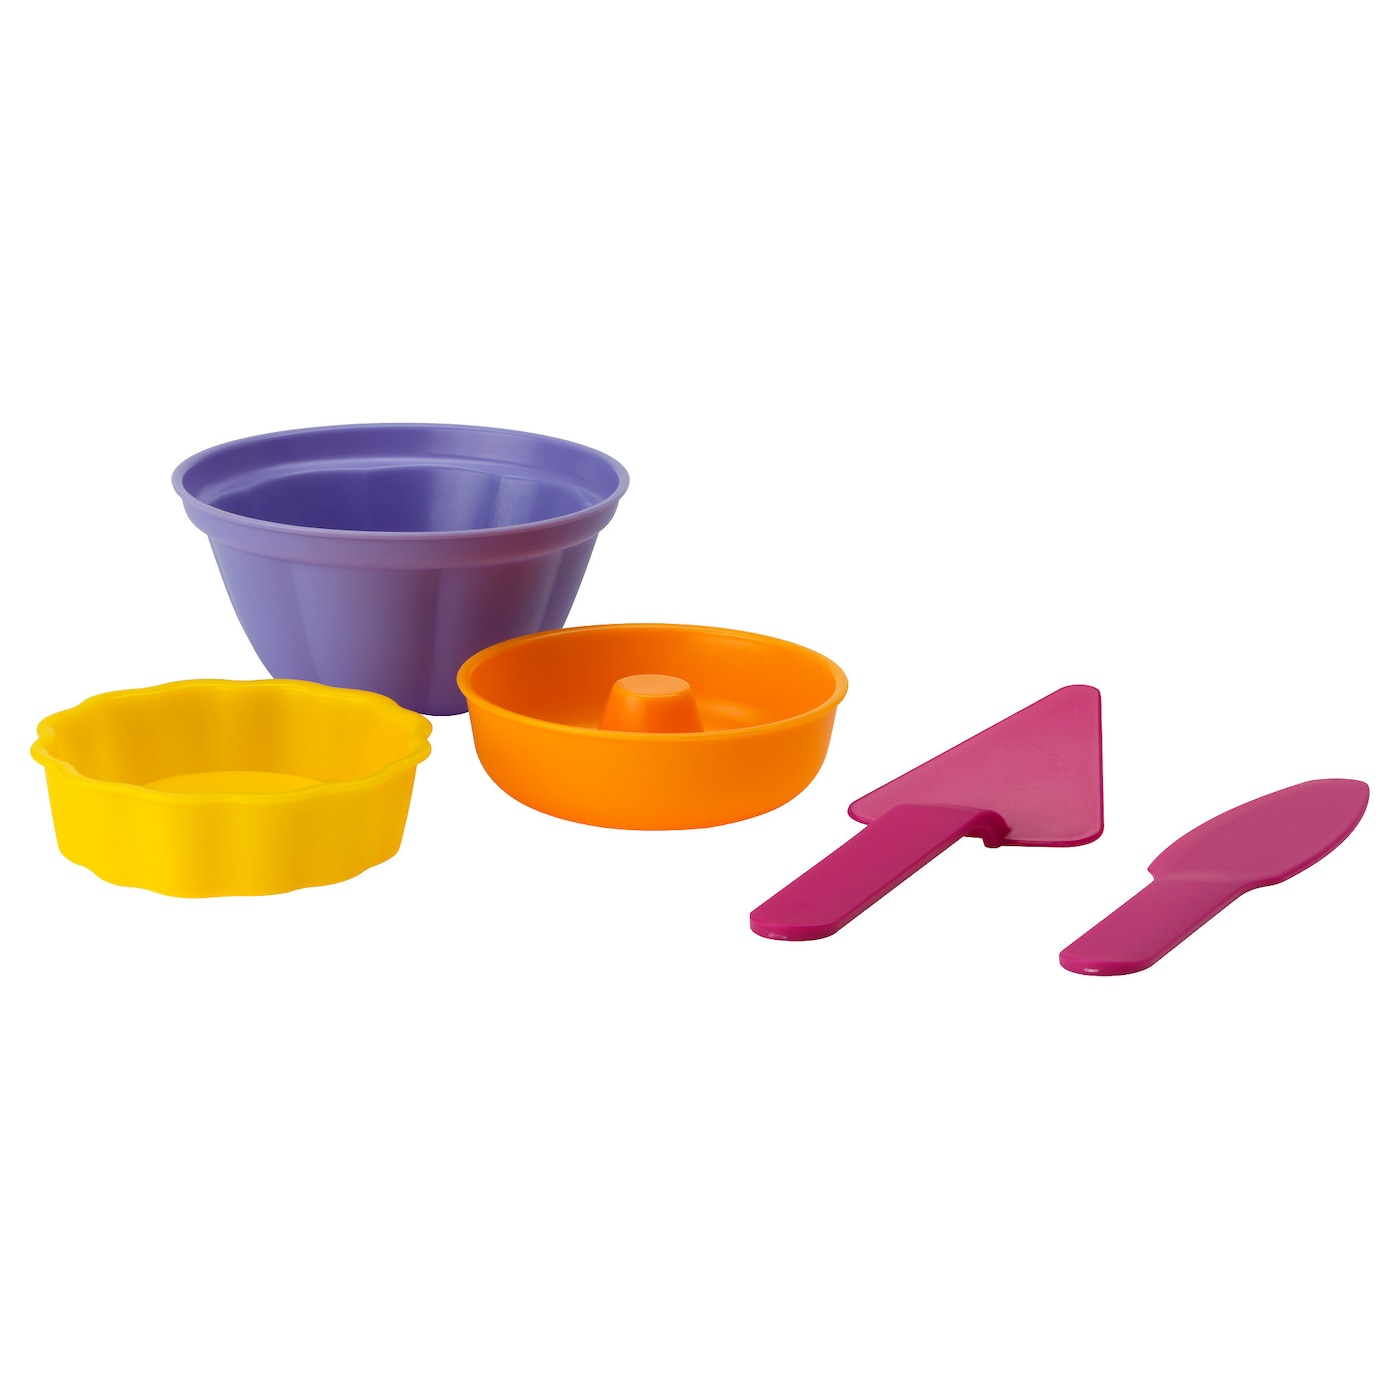 IKEA SANDIG 5-piece toy baking set